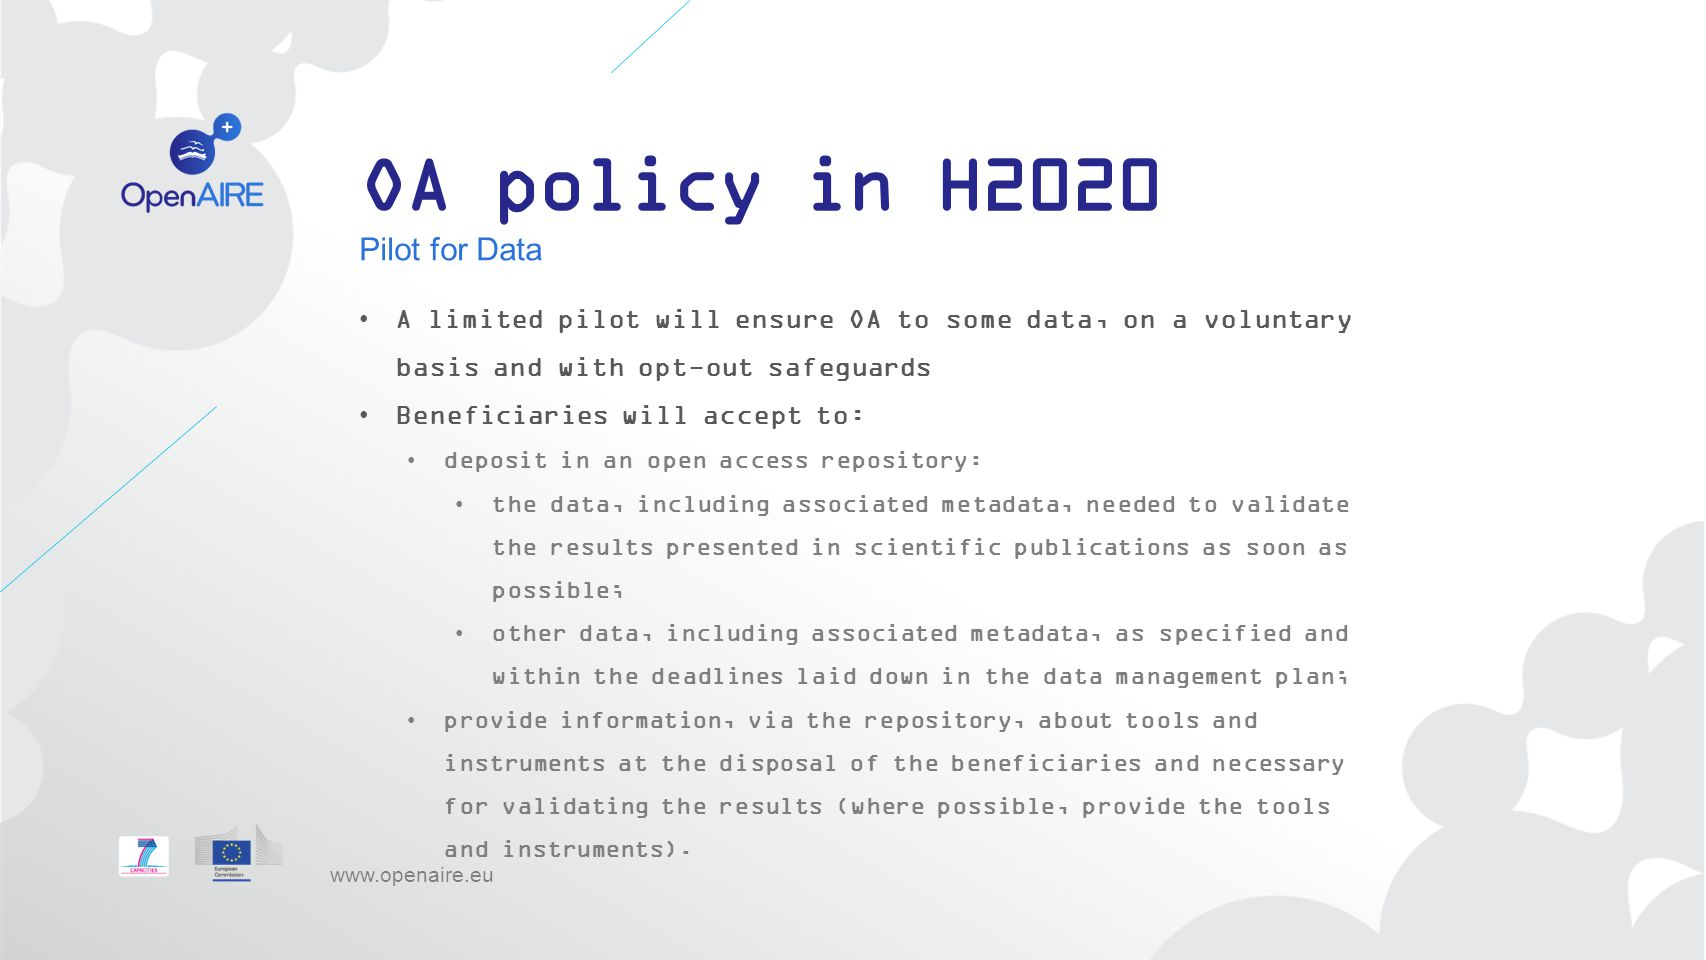 OA policy in H2020 Pilot for Data